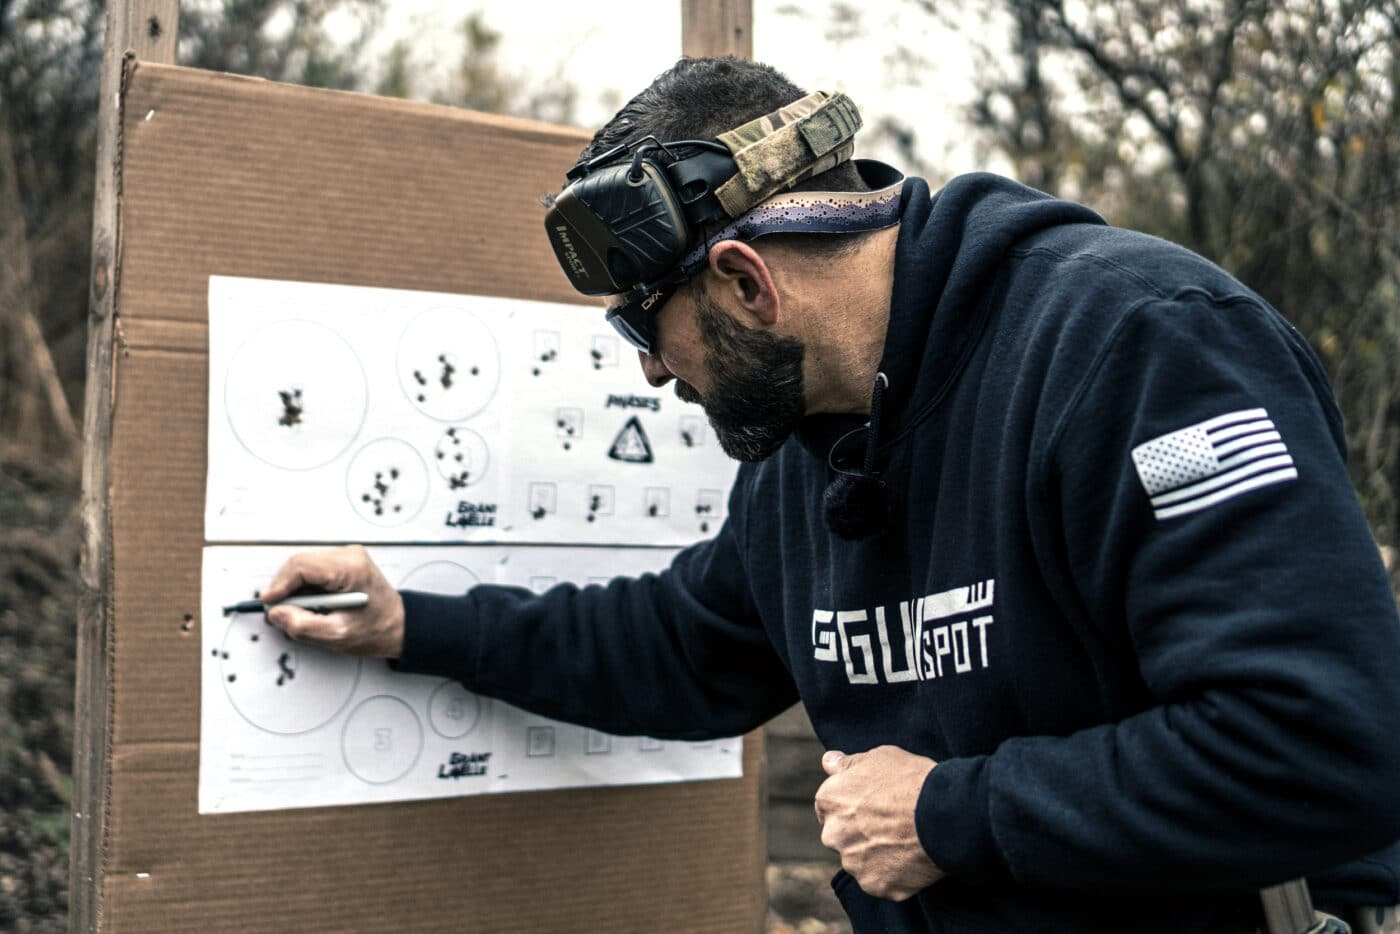 Man looking at target for Phase 5 shooting drill